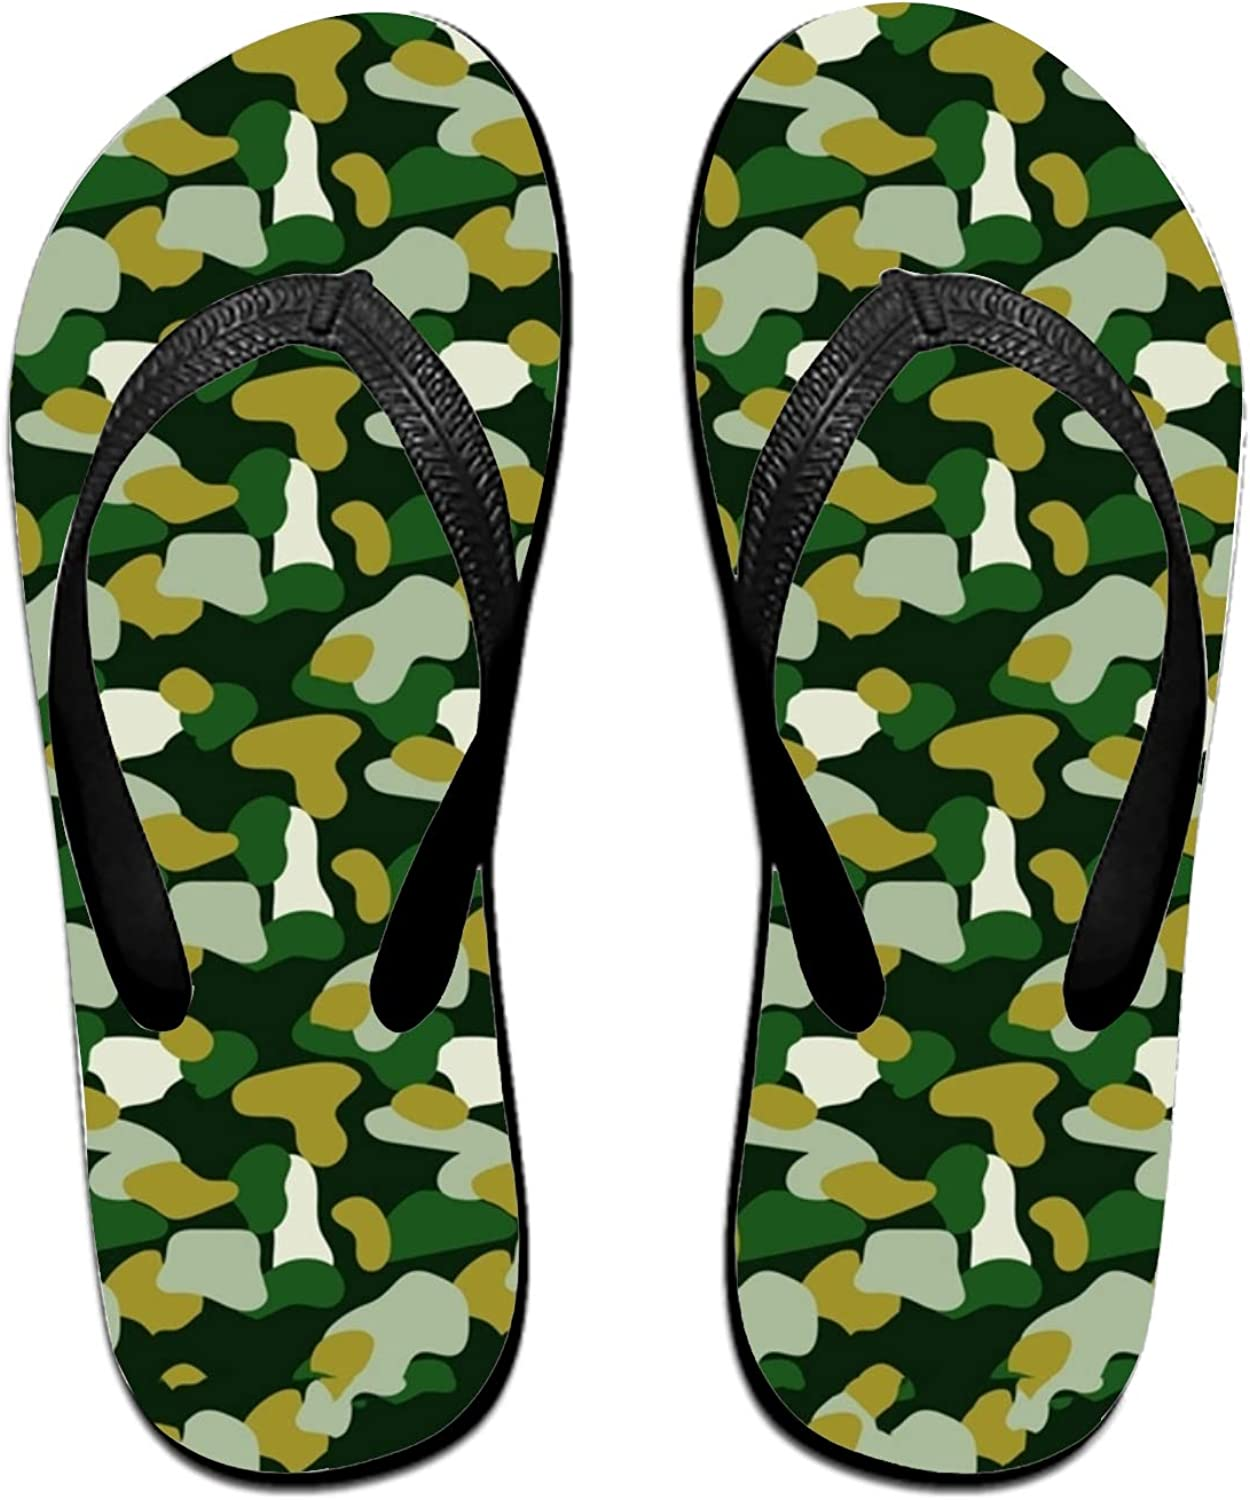 Wendex Military Camouflage Green Mens Beach Flat Rubber Sandals Flip Flops